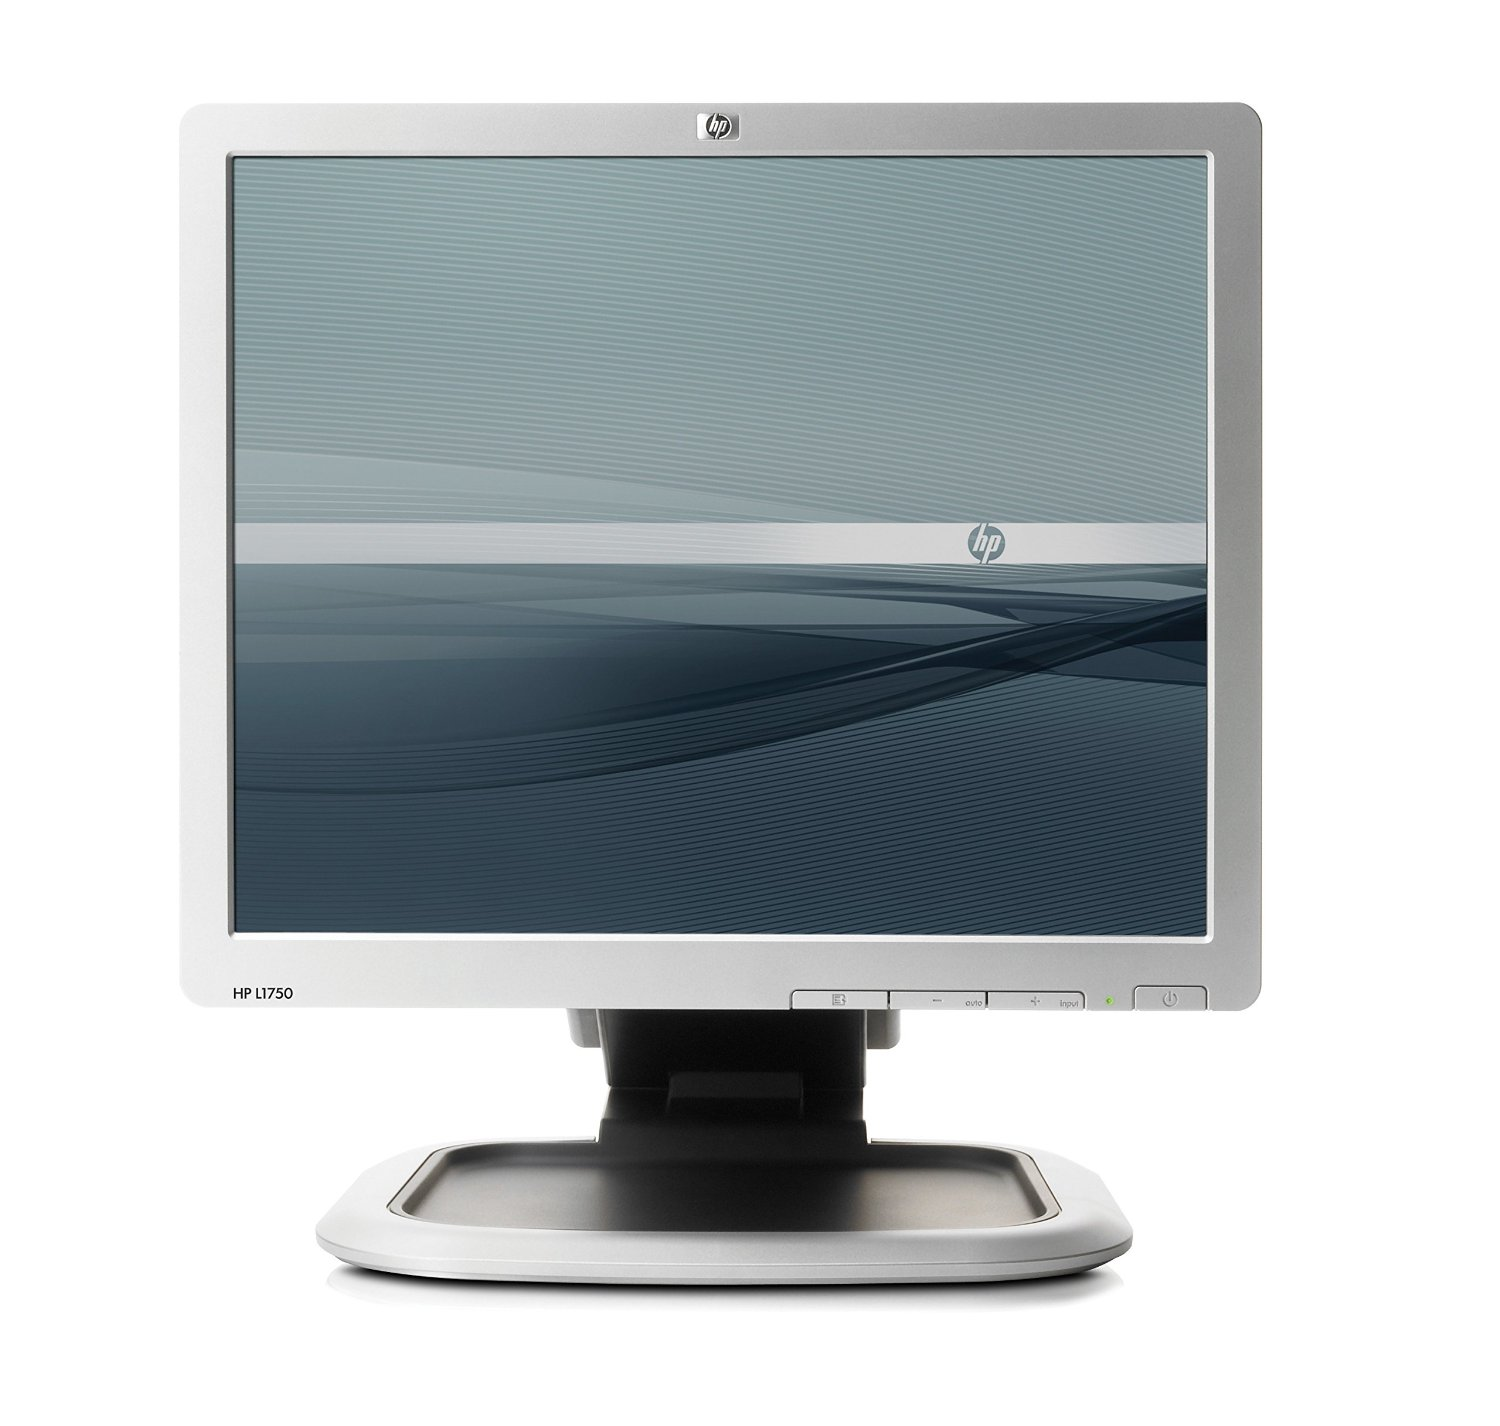 Mnl-5568] hp fs7600 monitors owners manual | 2019 ebook library.